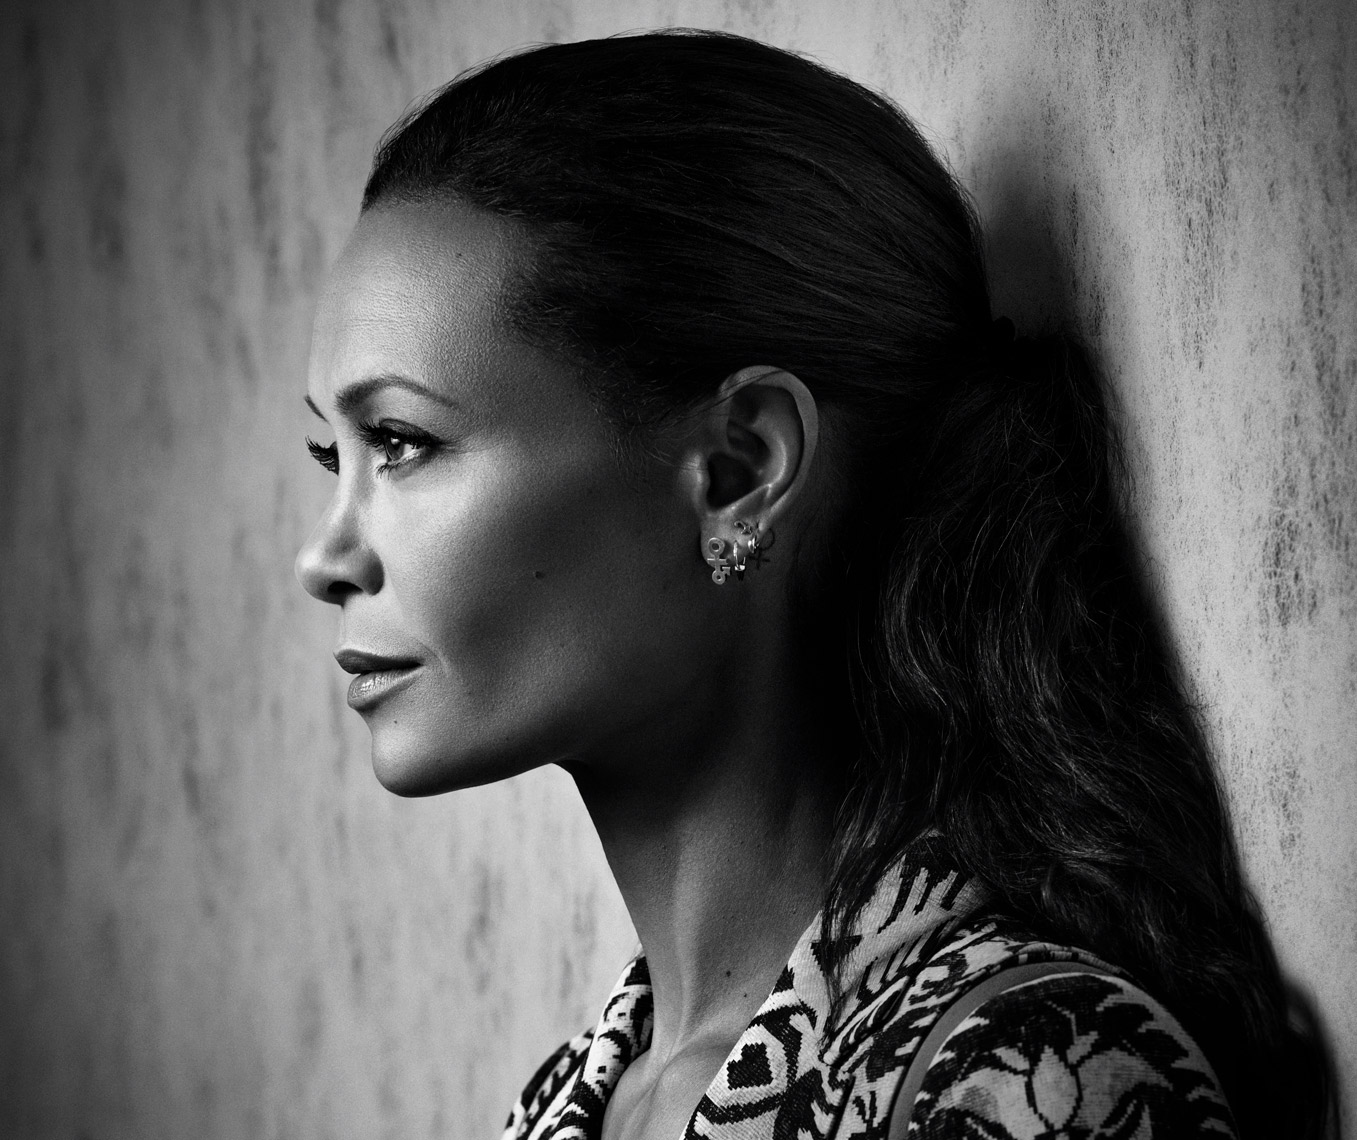 THANDIE-NEWTON-THE-WRAP-8850_BW-crop